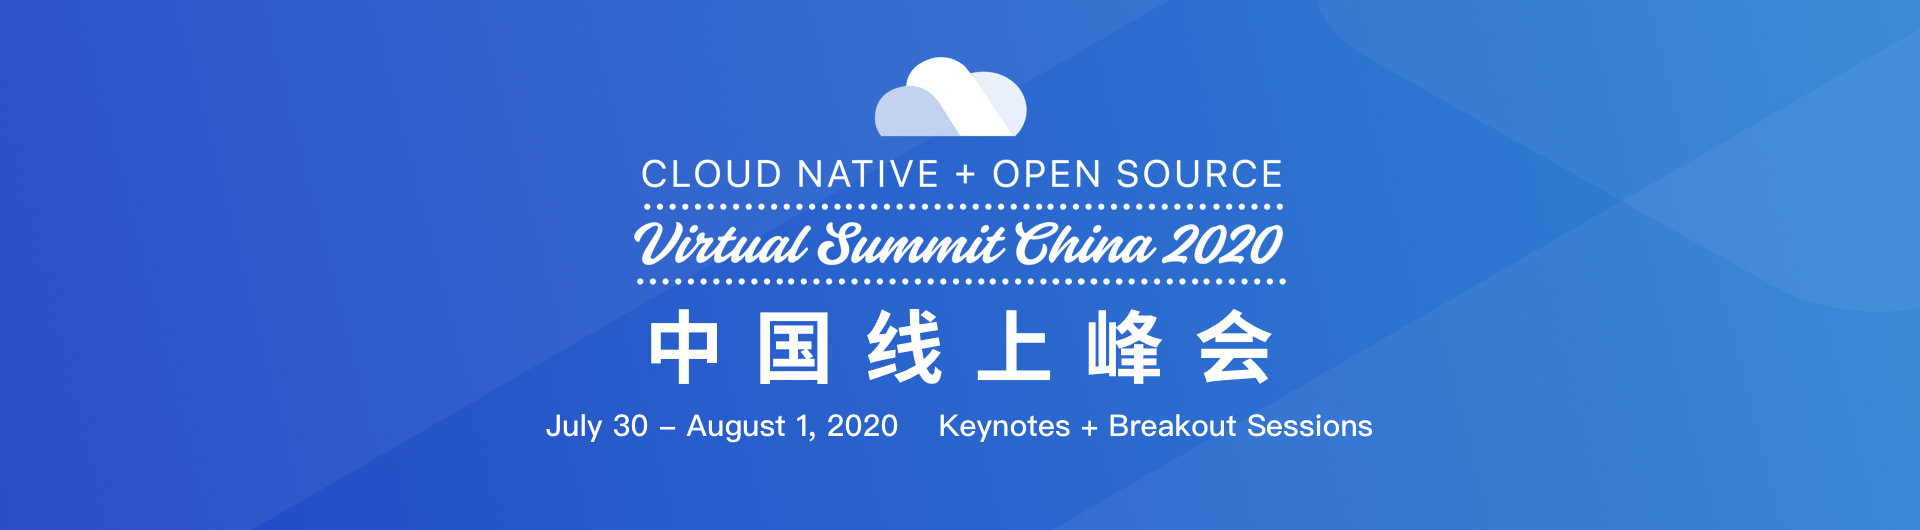 Cloud Native + Open Source Virtual Summit China 2020